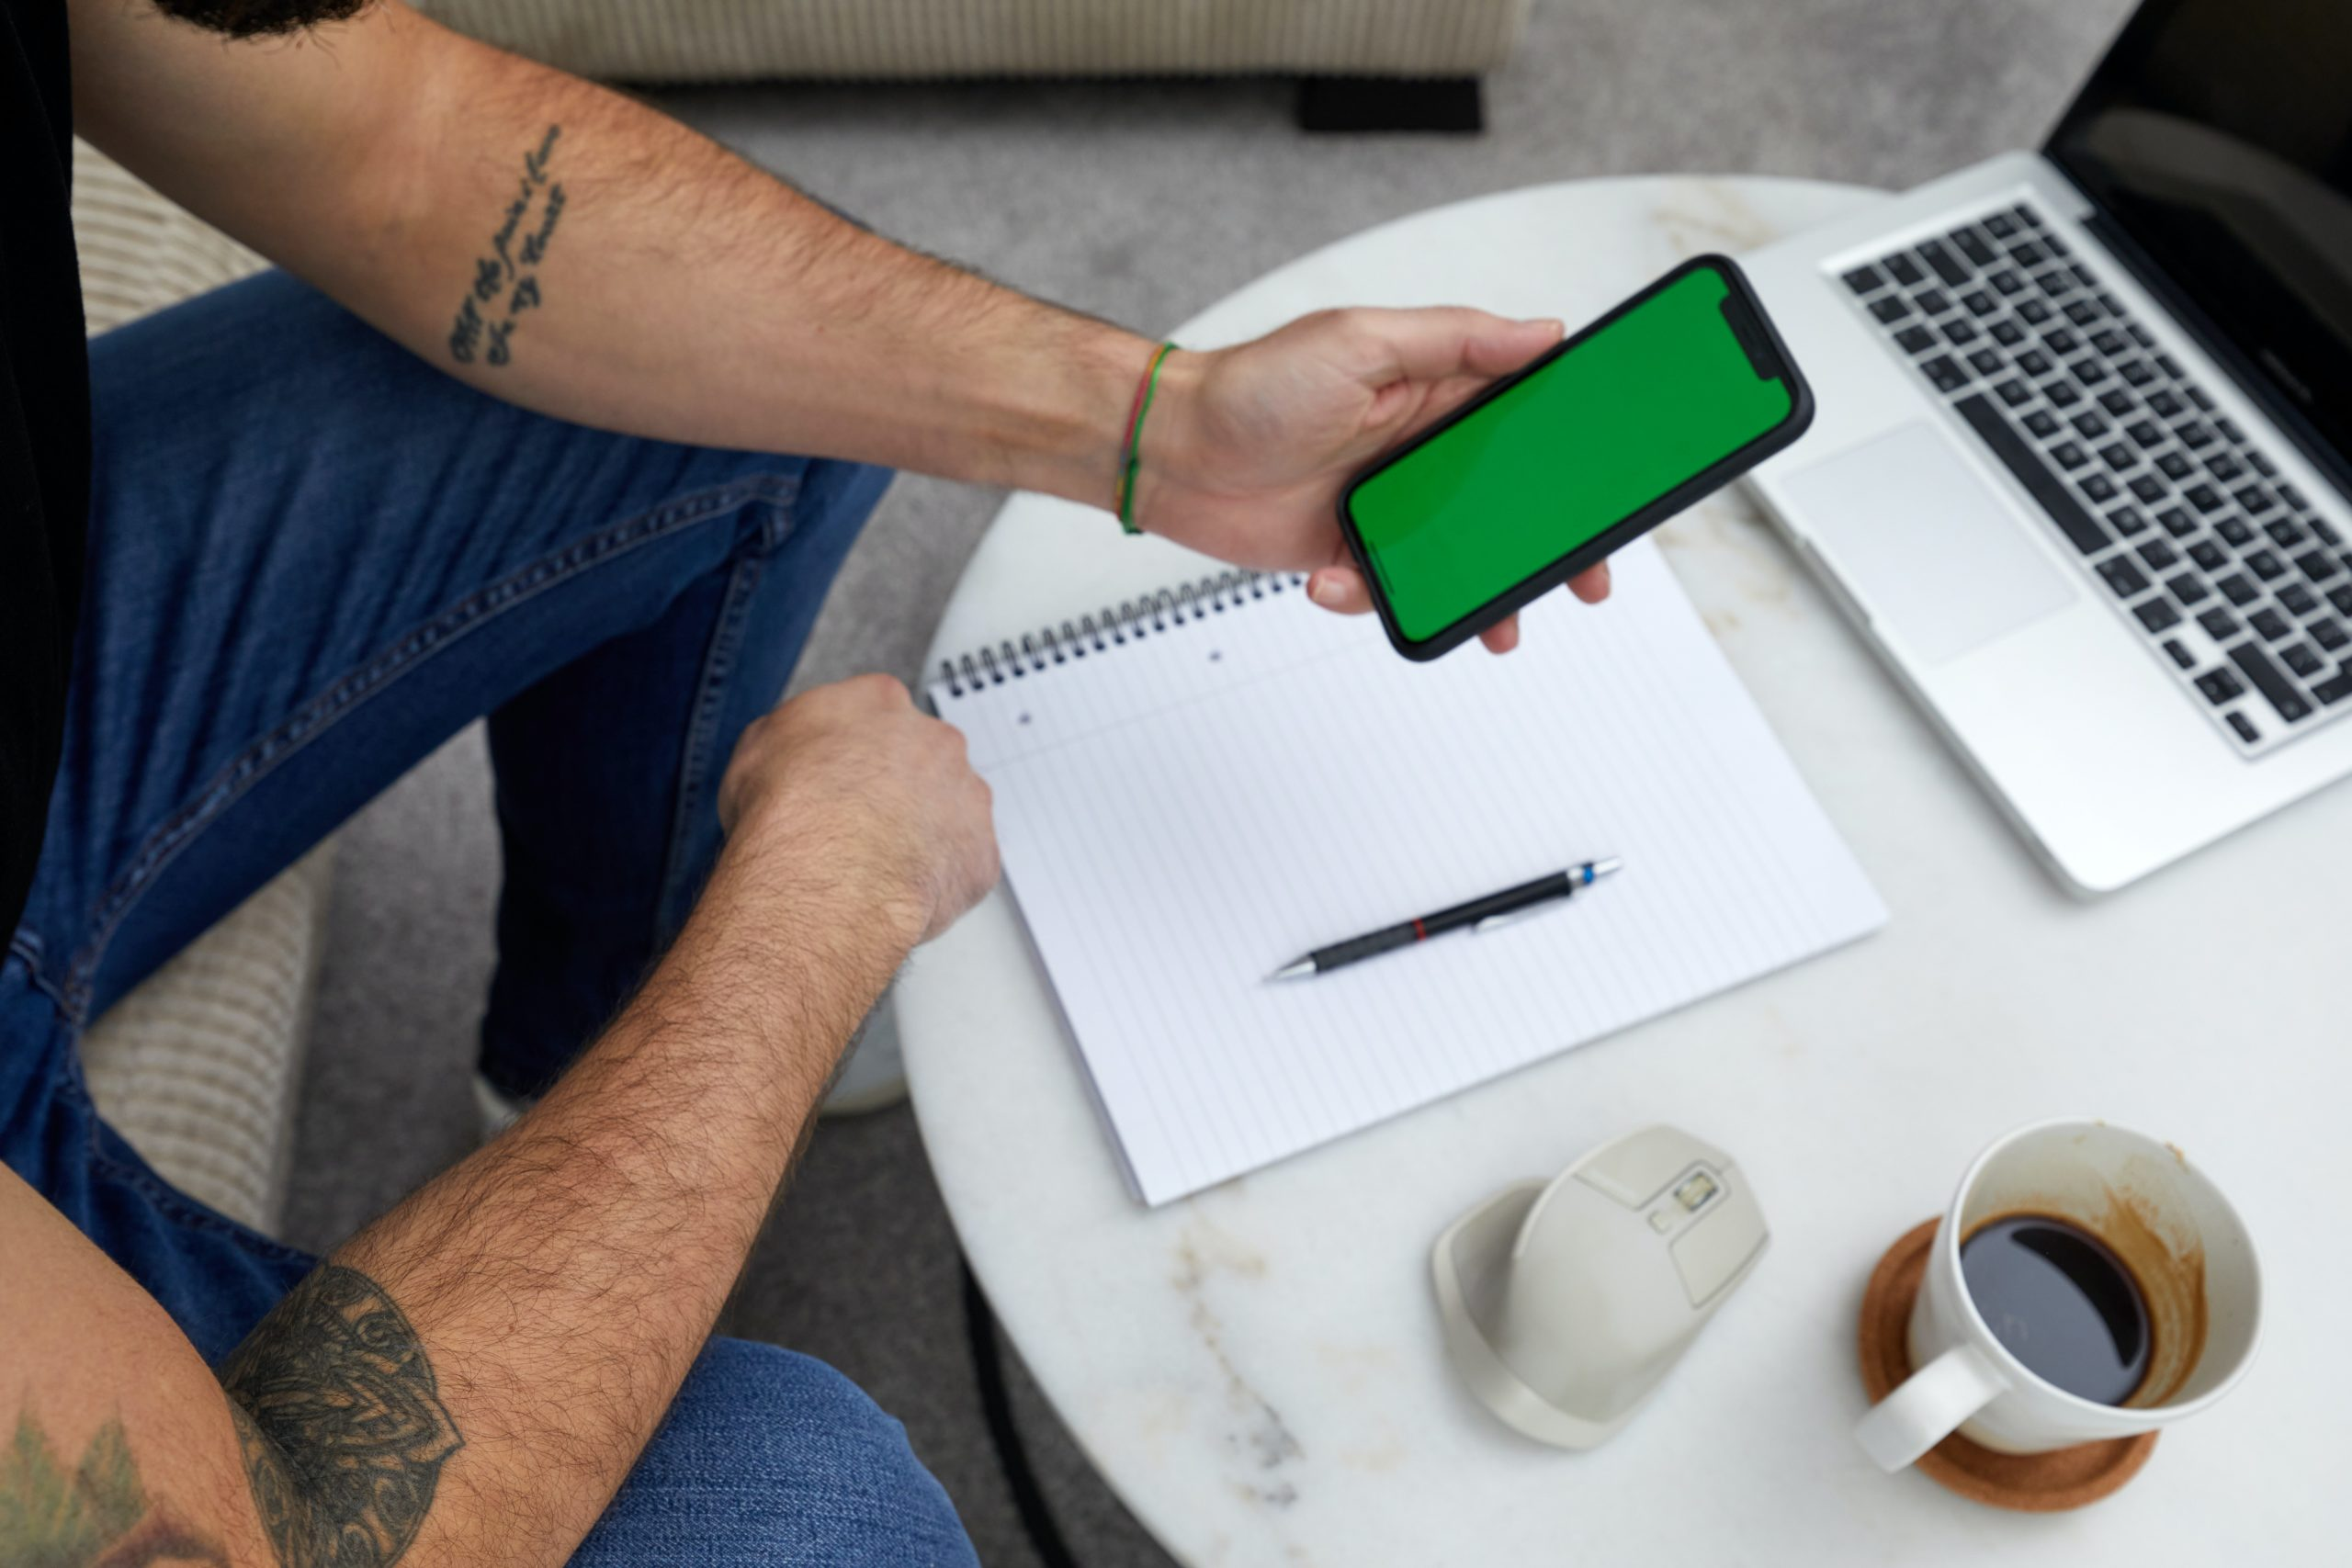 Man holding smartphone with laptop in the background